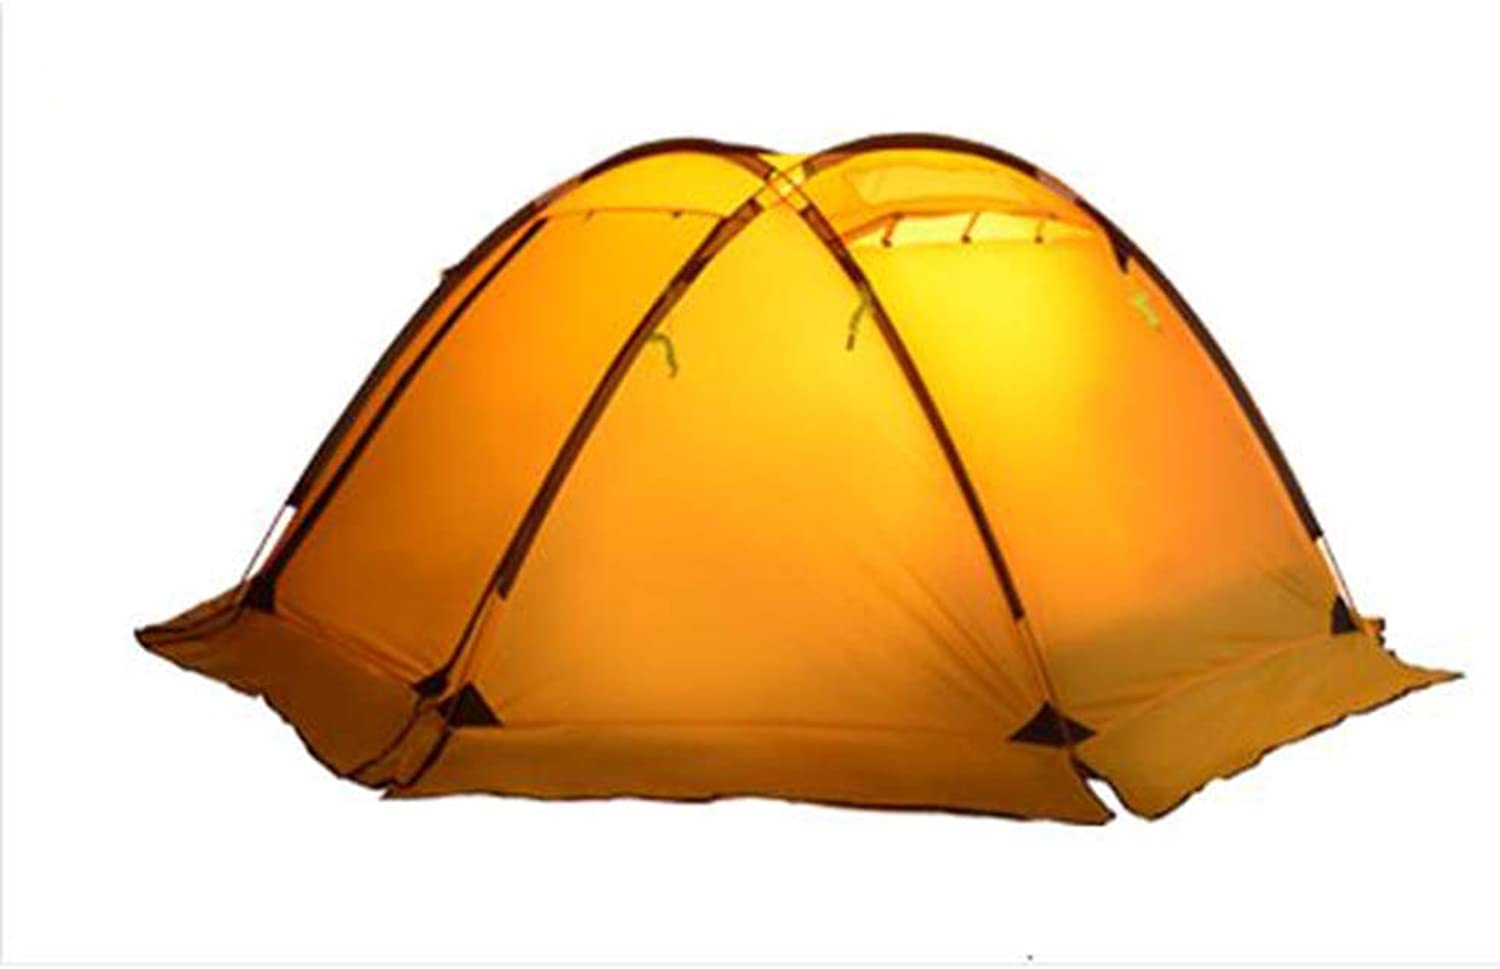 Ball Type Tent, MultiPerson Wild Family Camping Camping Mountaineering Rainproof Double Tent